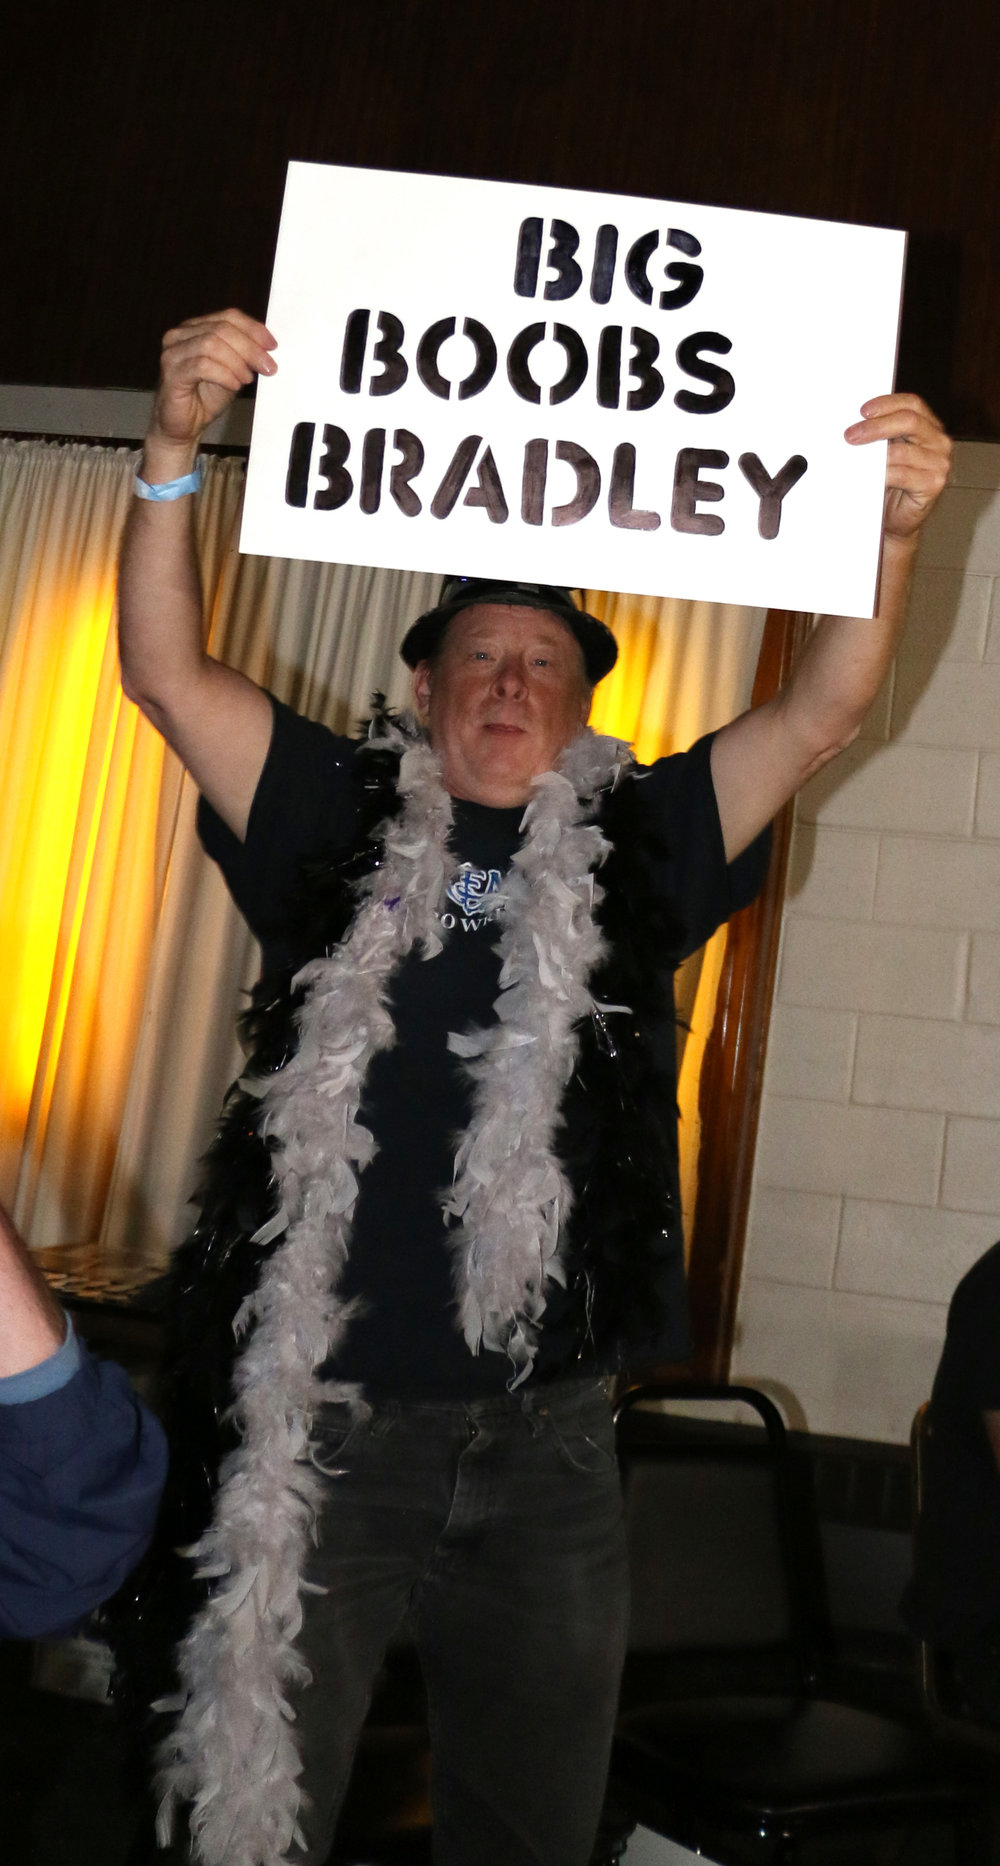 A fan mocks Jay Bradley with his sign.